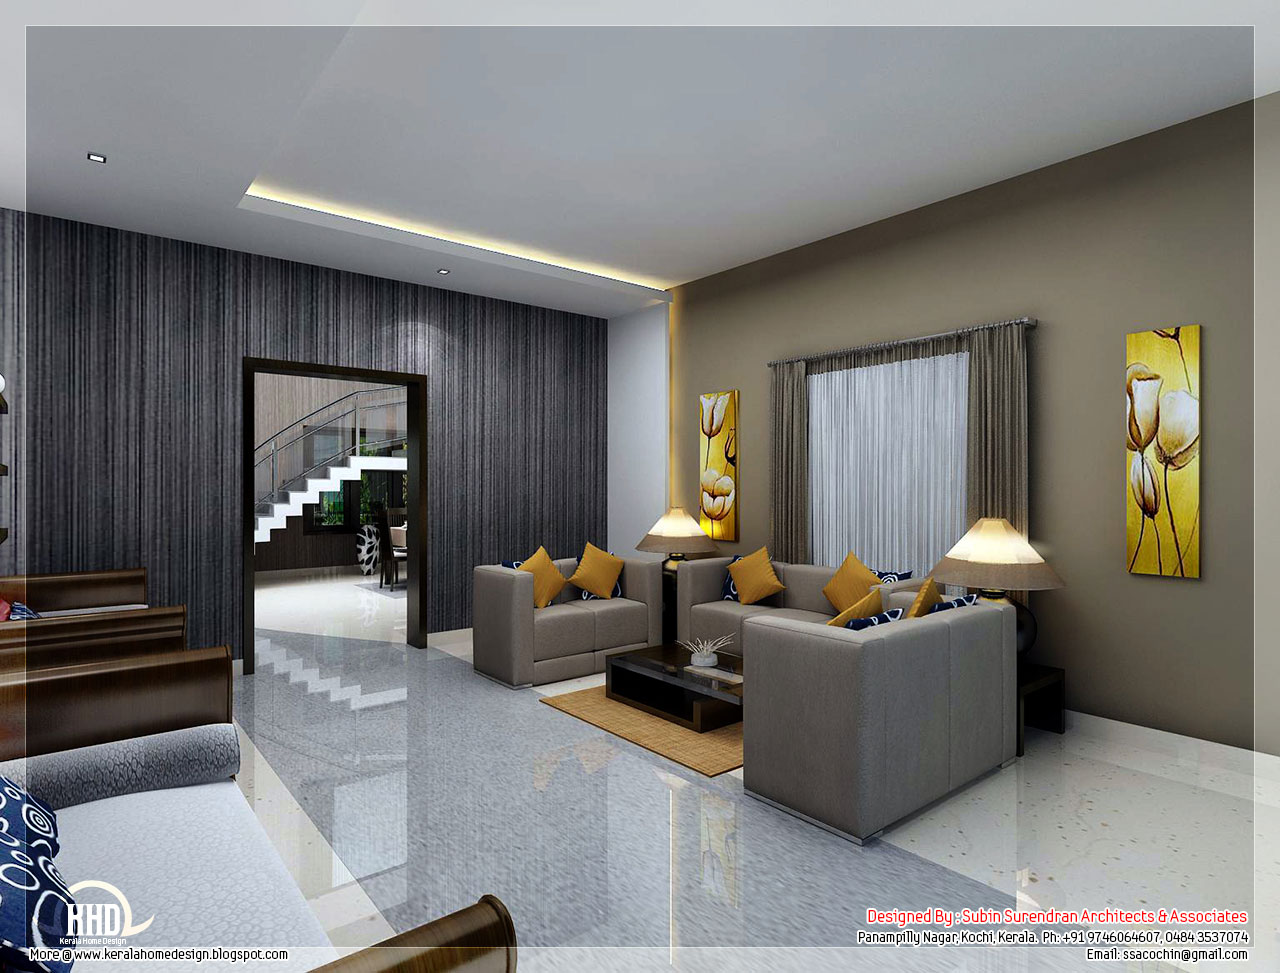 Awesome 3d interior renderings kerala home design and for Home design ideas interior